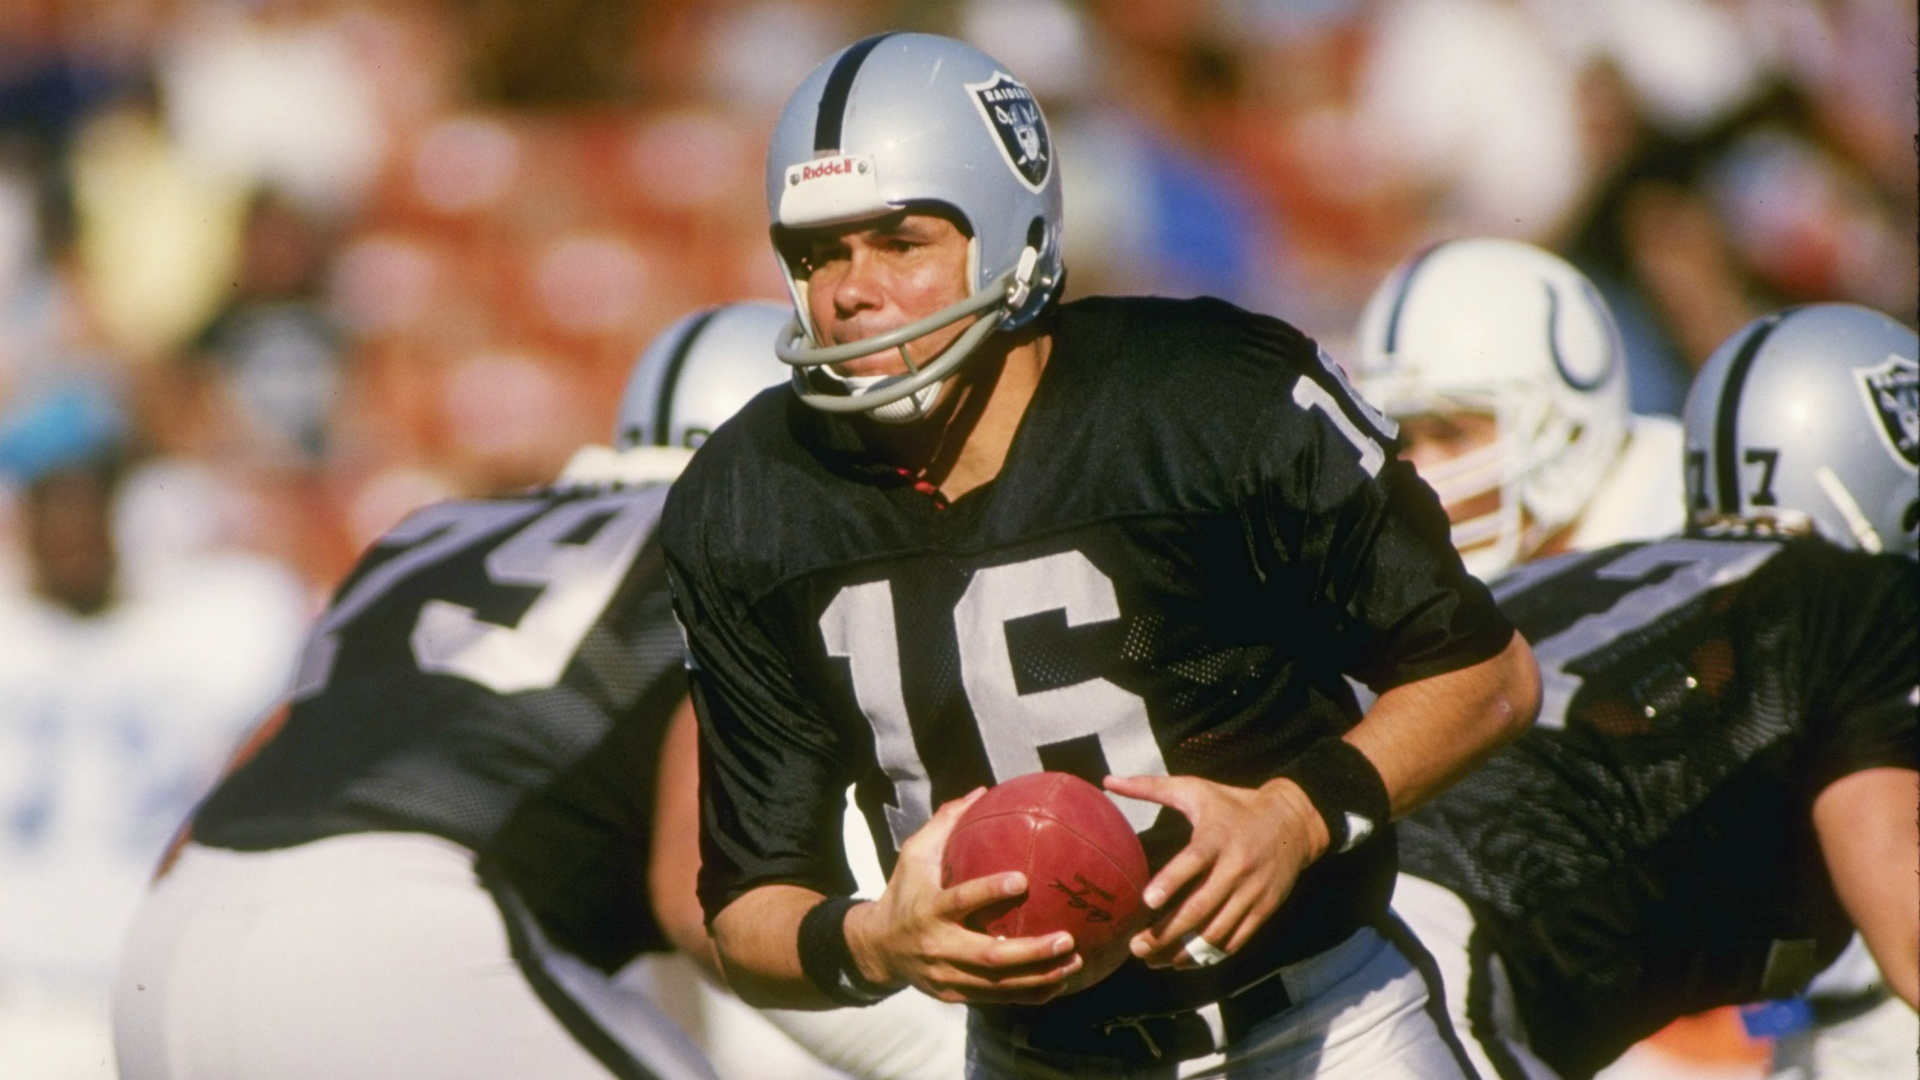 Fomer Patriots QB Jim Plunkett: 'My life sucks'